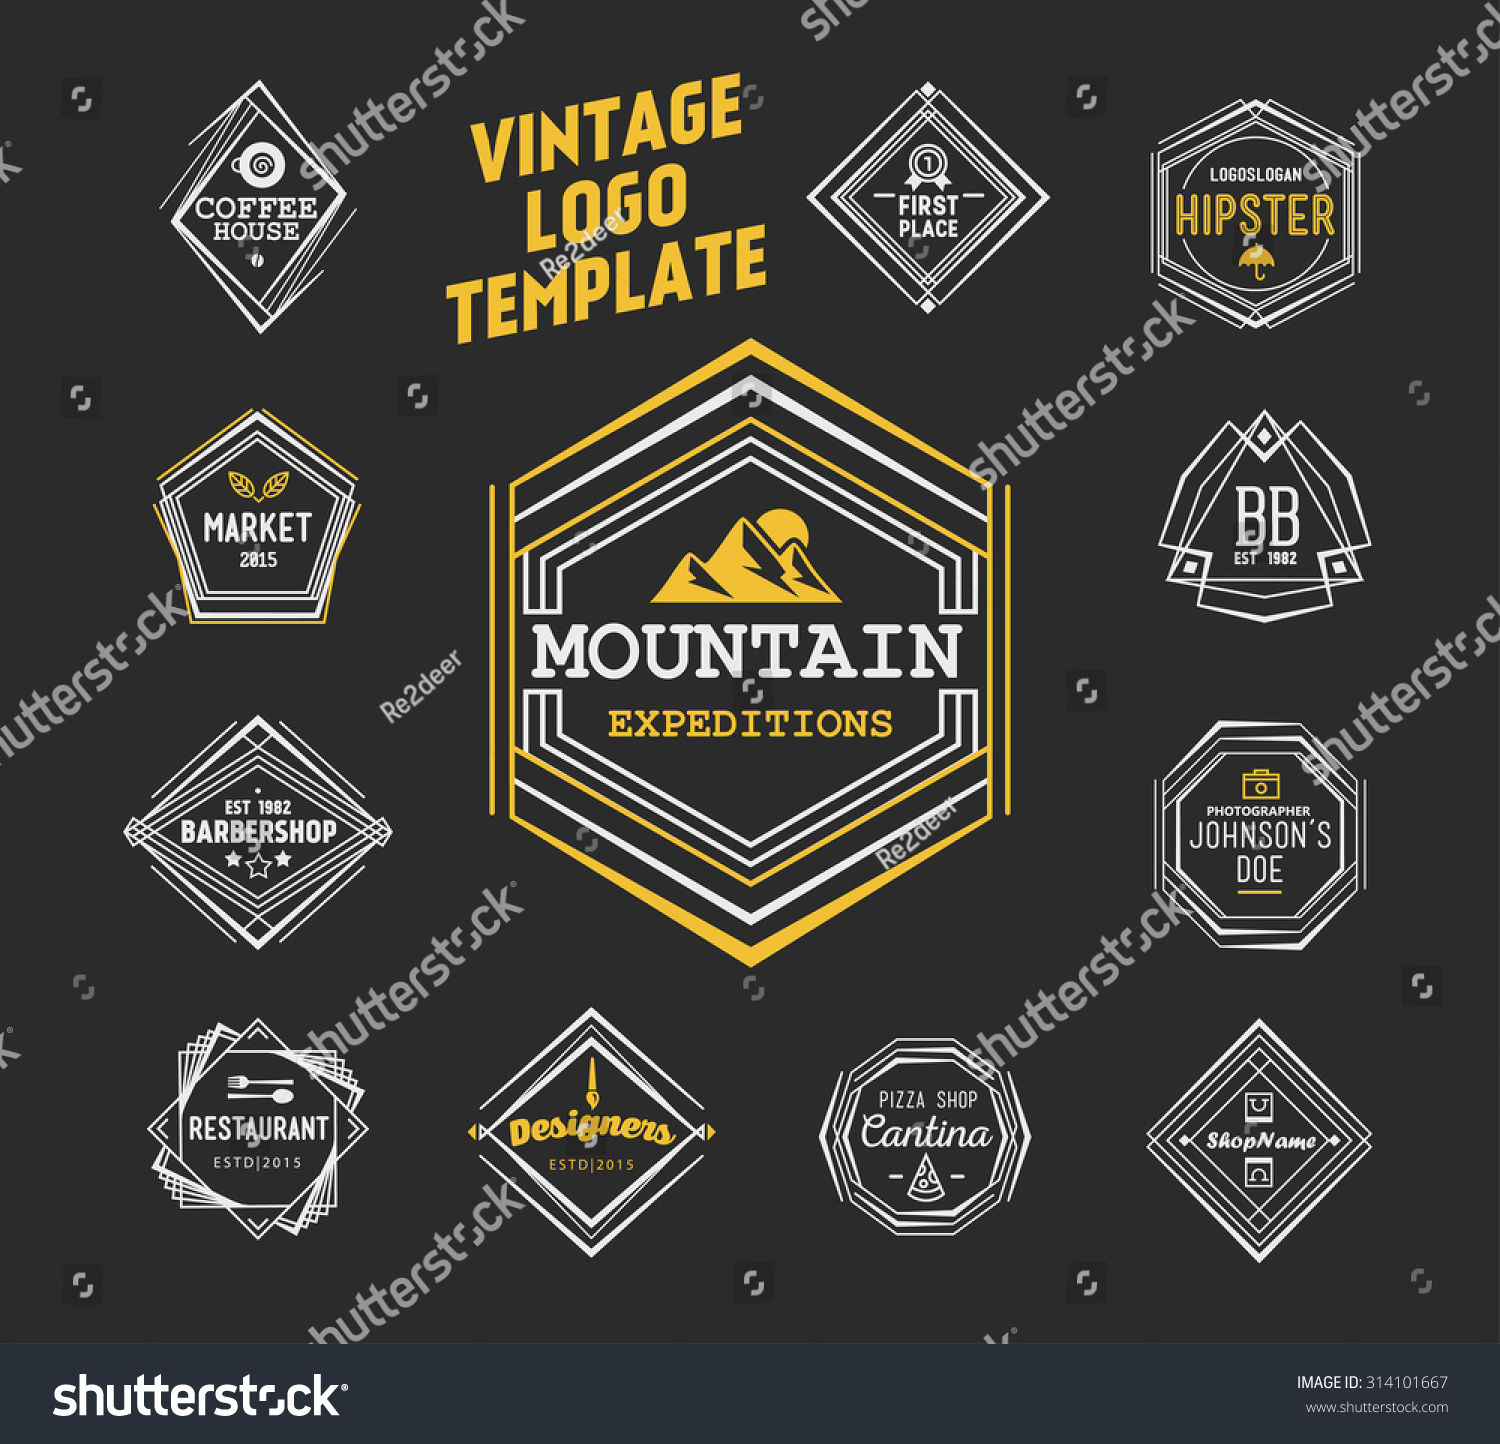 vintage logo template elegant line art stock vector 314101667 shutterstock. Black Bedroom Furniture Sets. Home Design Ideas